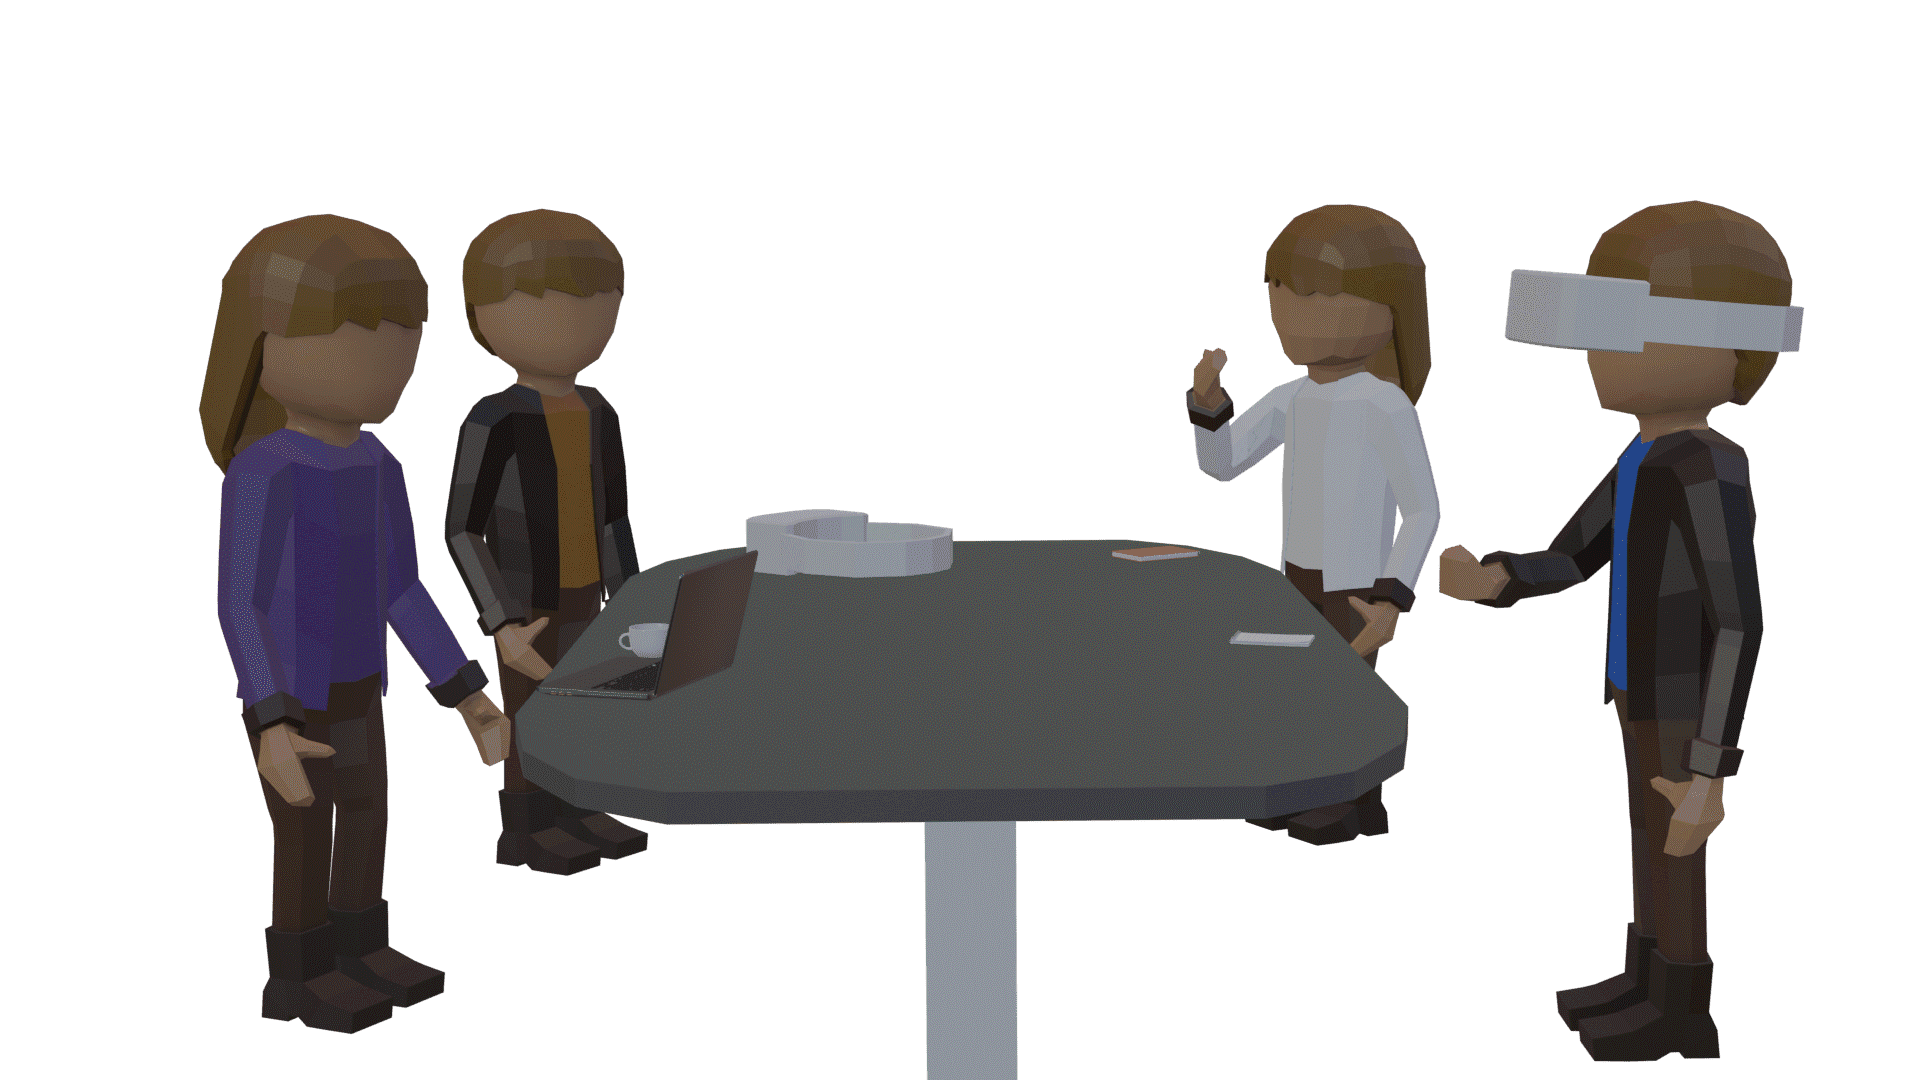 Table, Furniture, Product, Sharing, Standing, Gesture, Interaction, Comfort, People, Cartoon